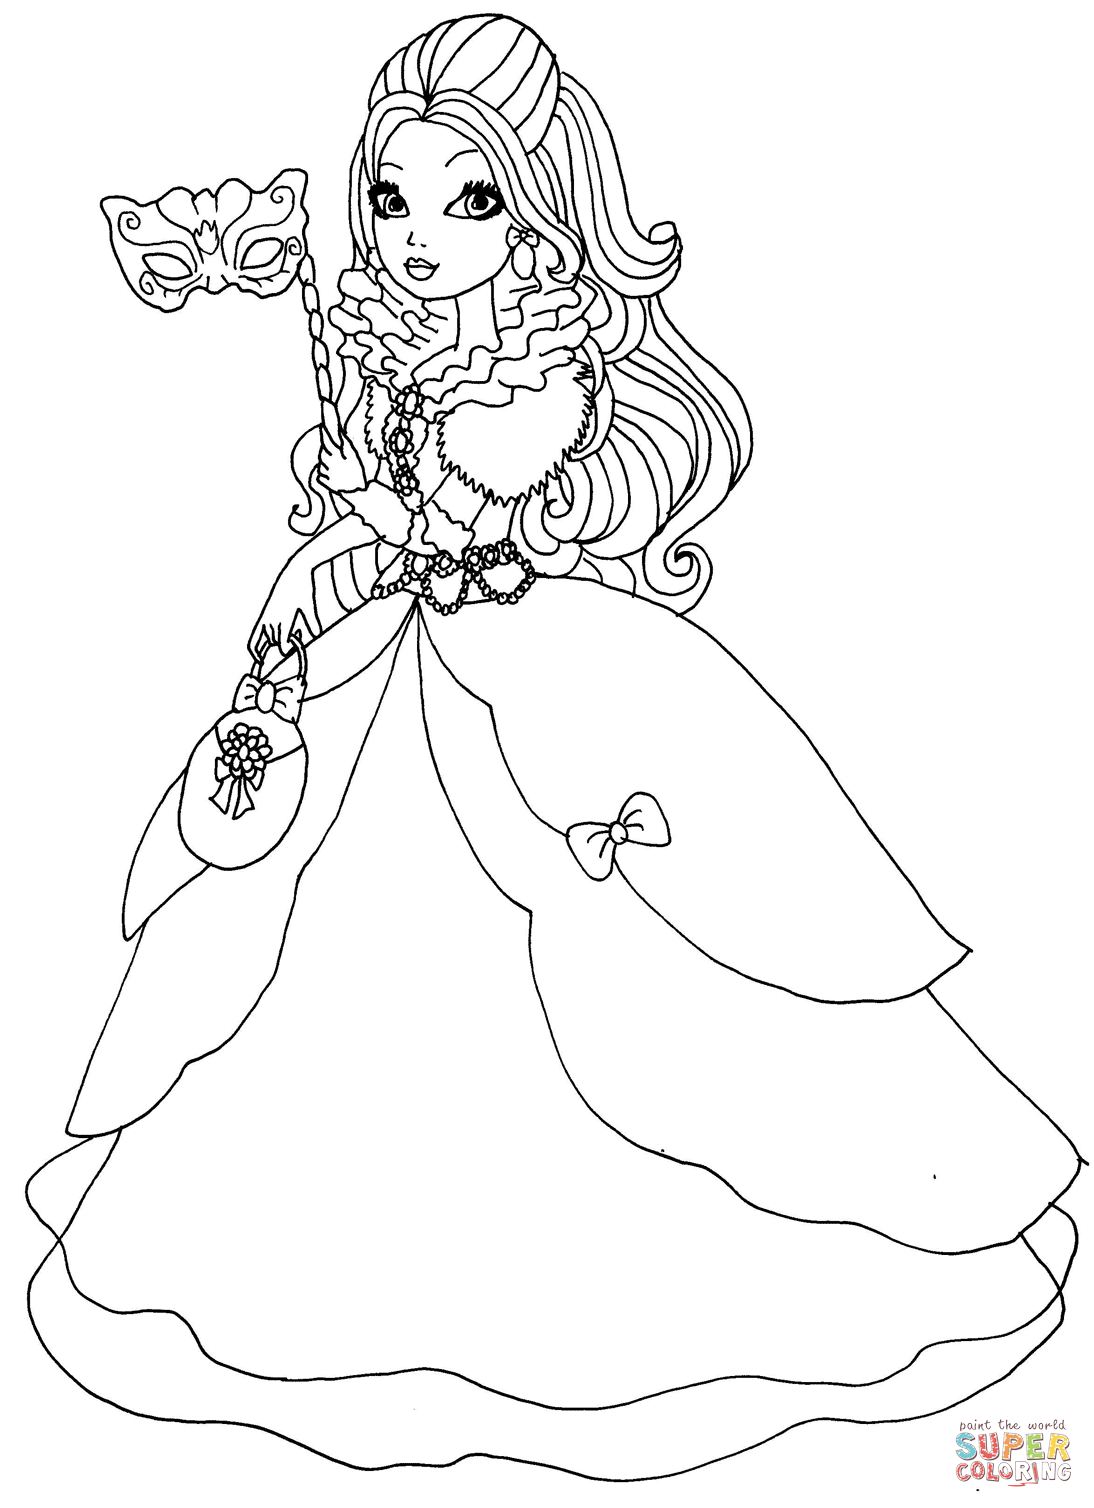 desenho de ever after high apple white thronecoming para colorir